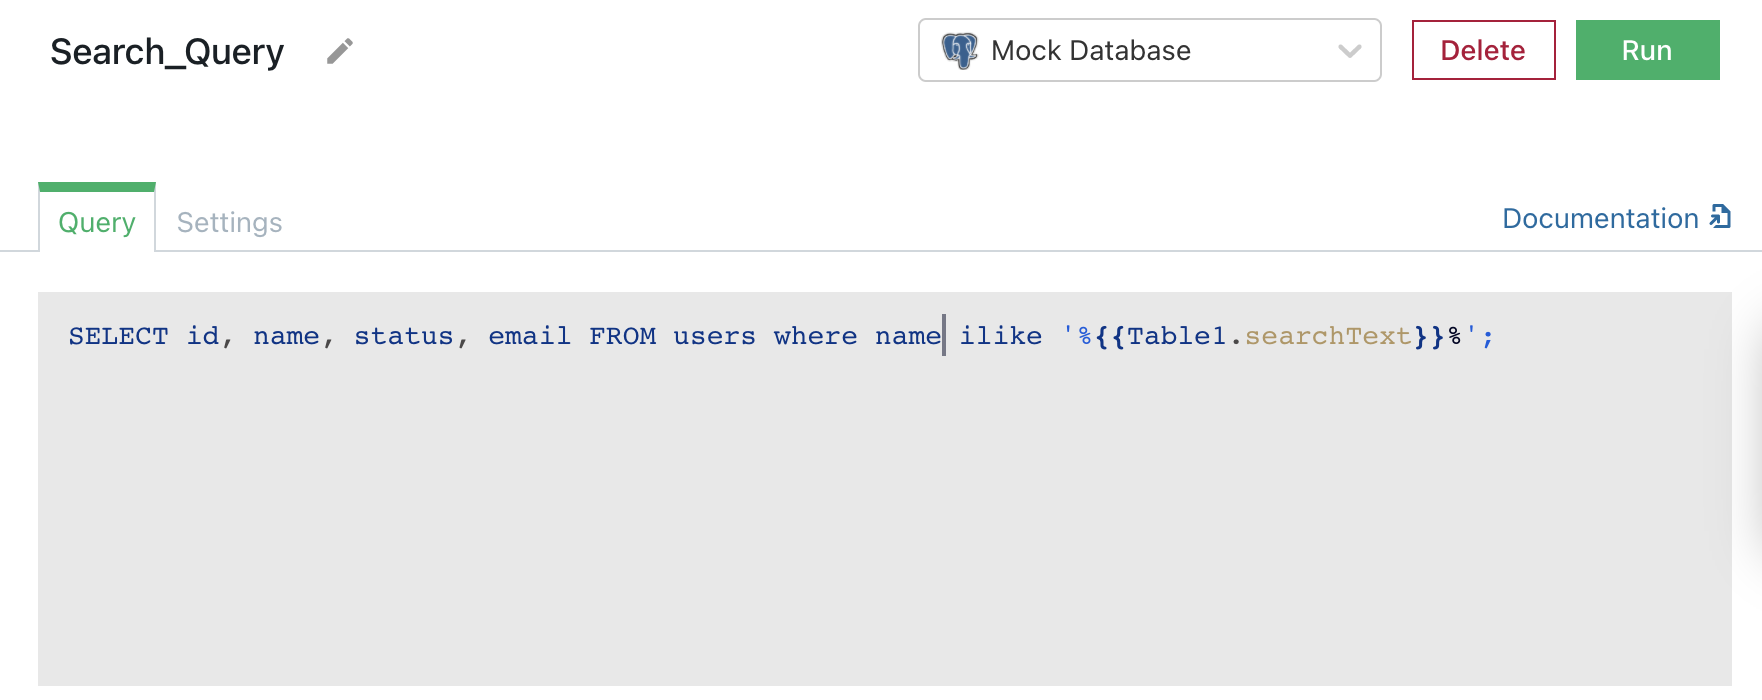 Query for server-side searching that uses searchText property